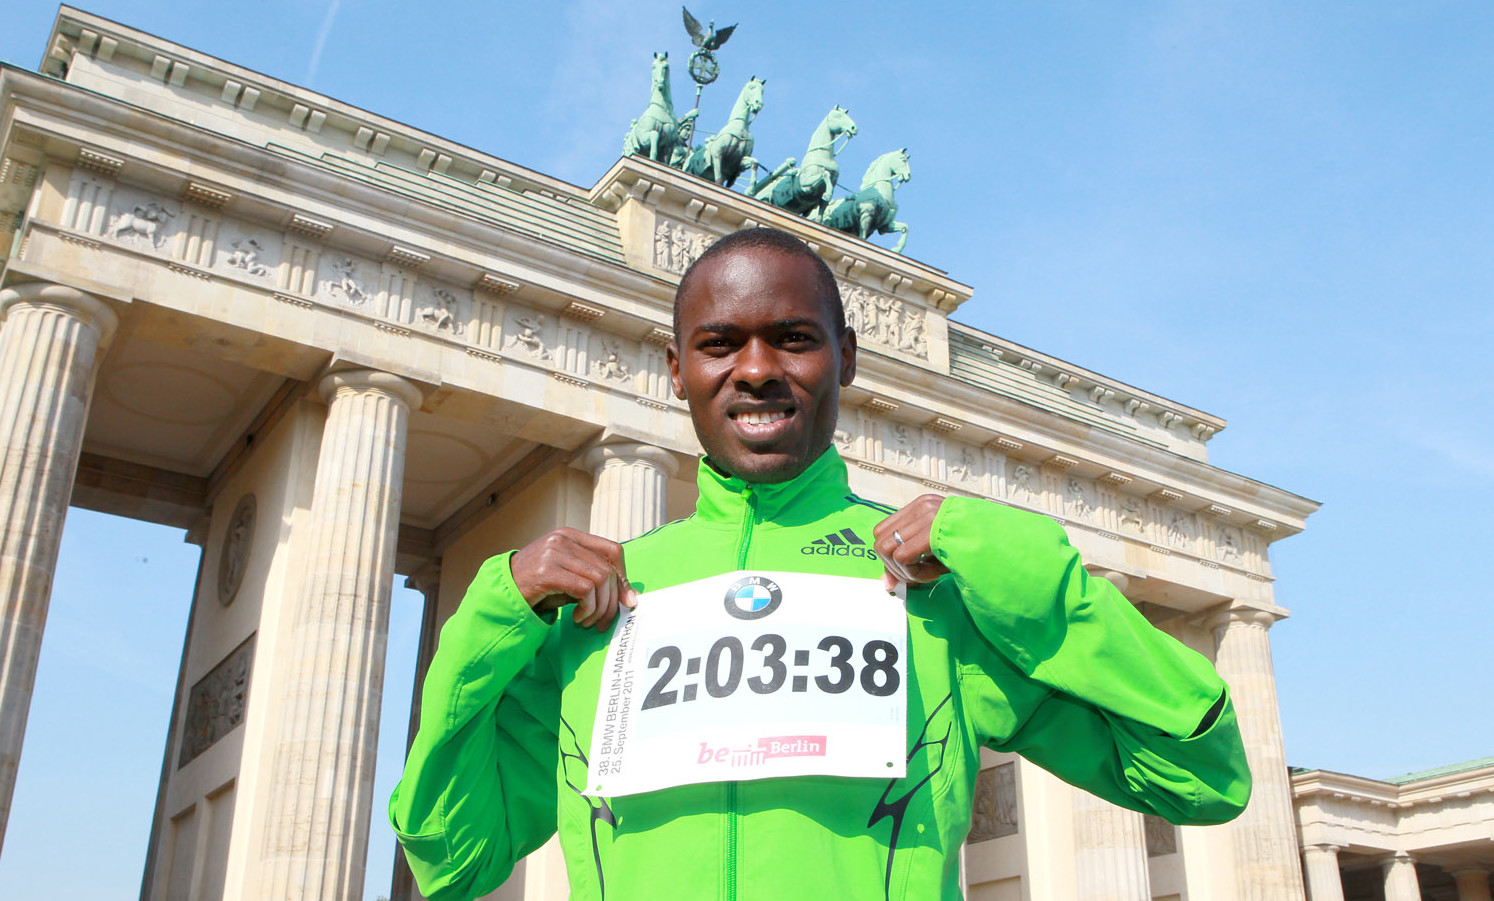 Former marathon world record holder Patrick Makau of Kenya has announced his retirement from professional running